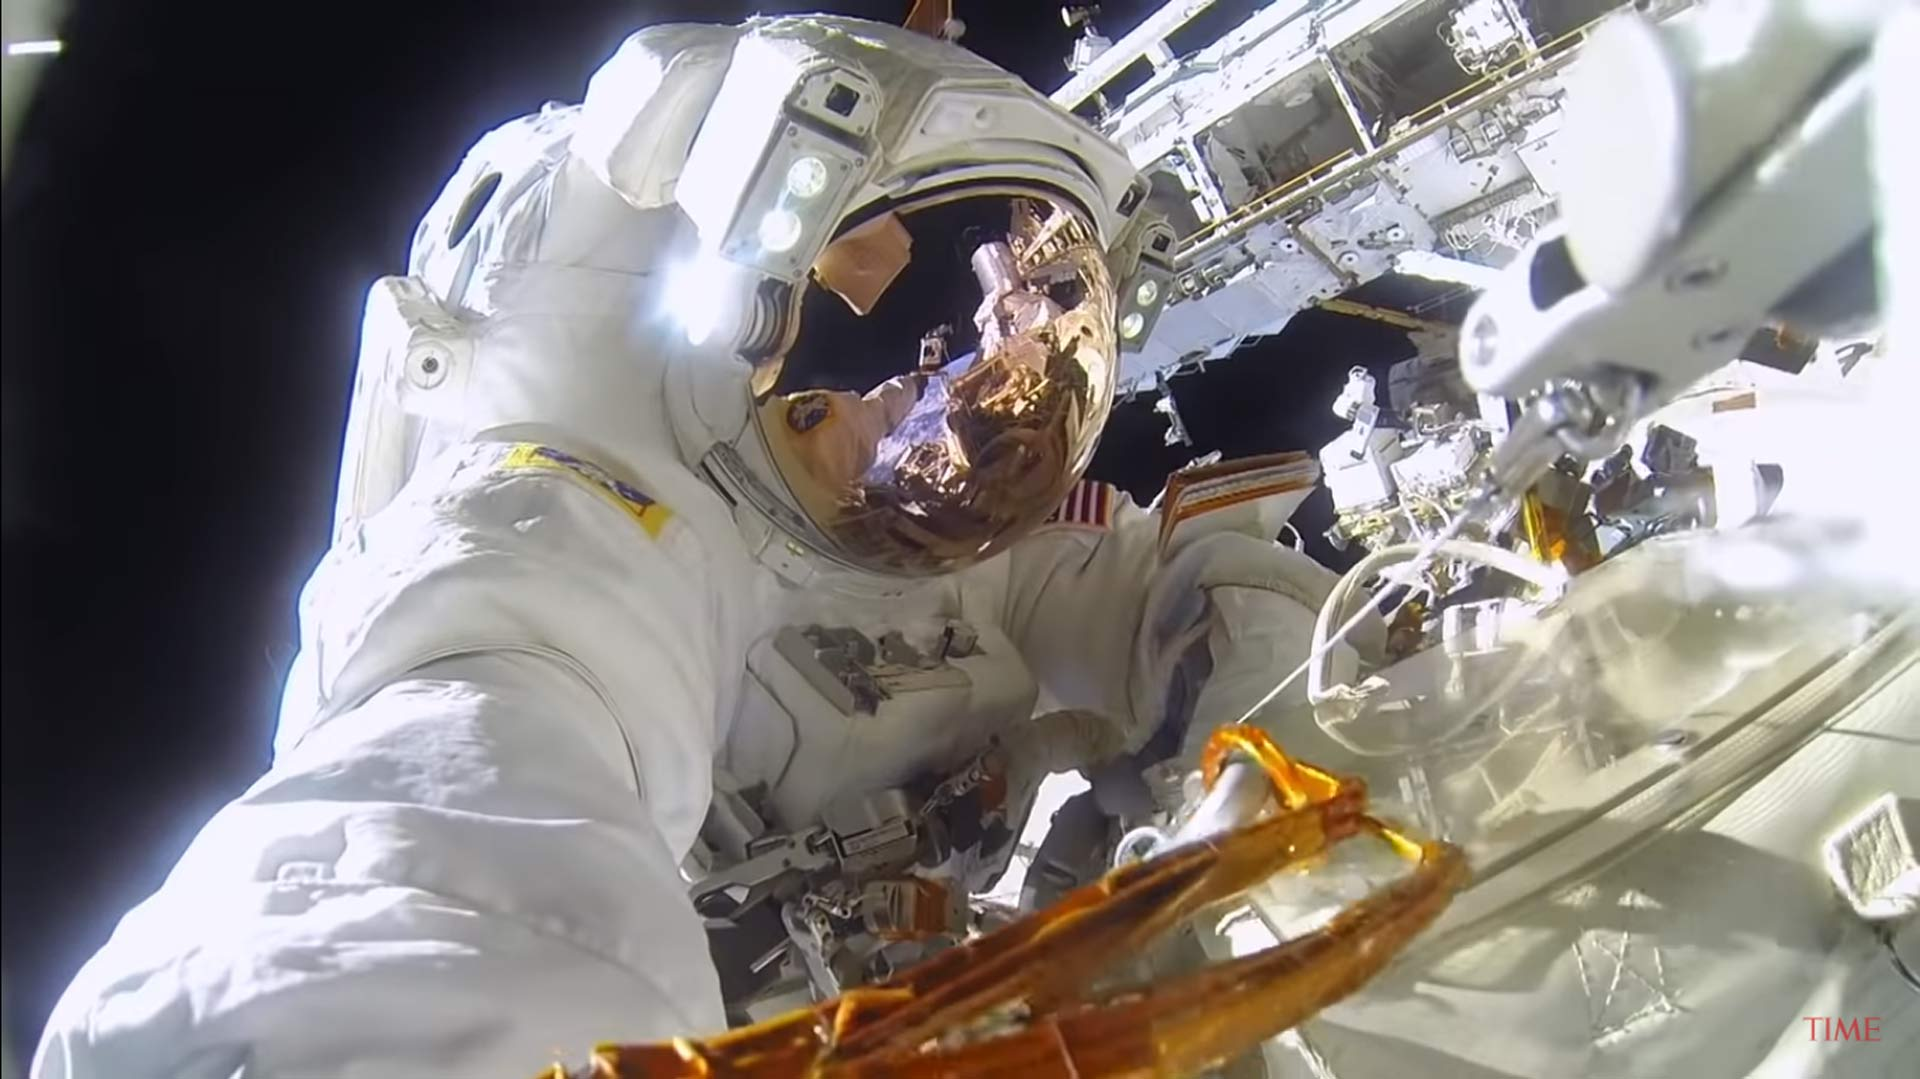 VR Cameras Now on International Space Station to Capture Space Walks